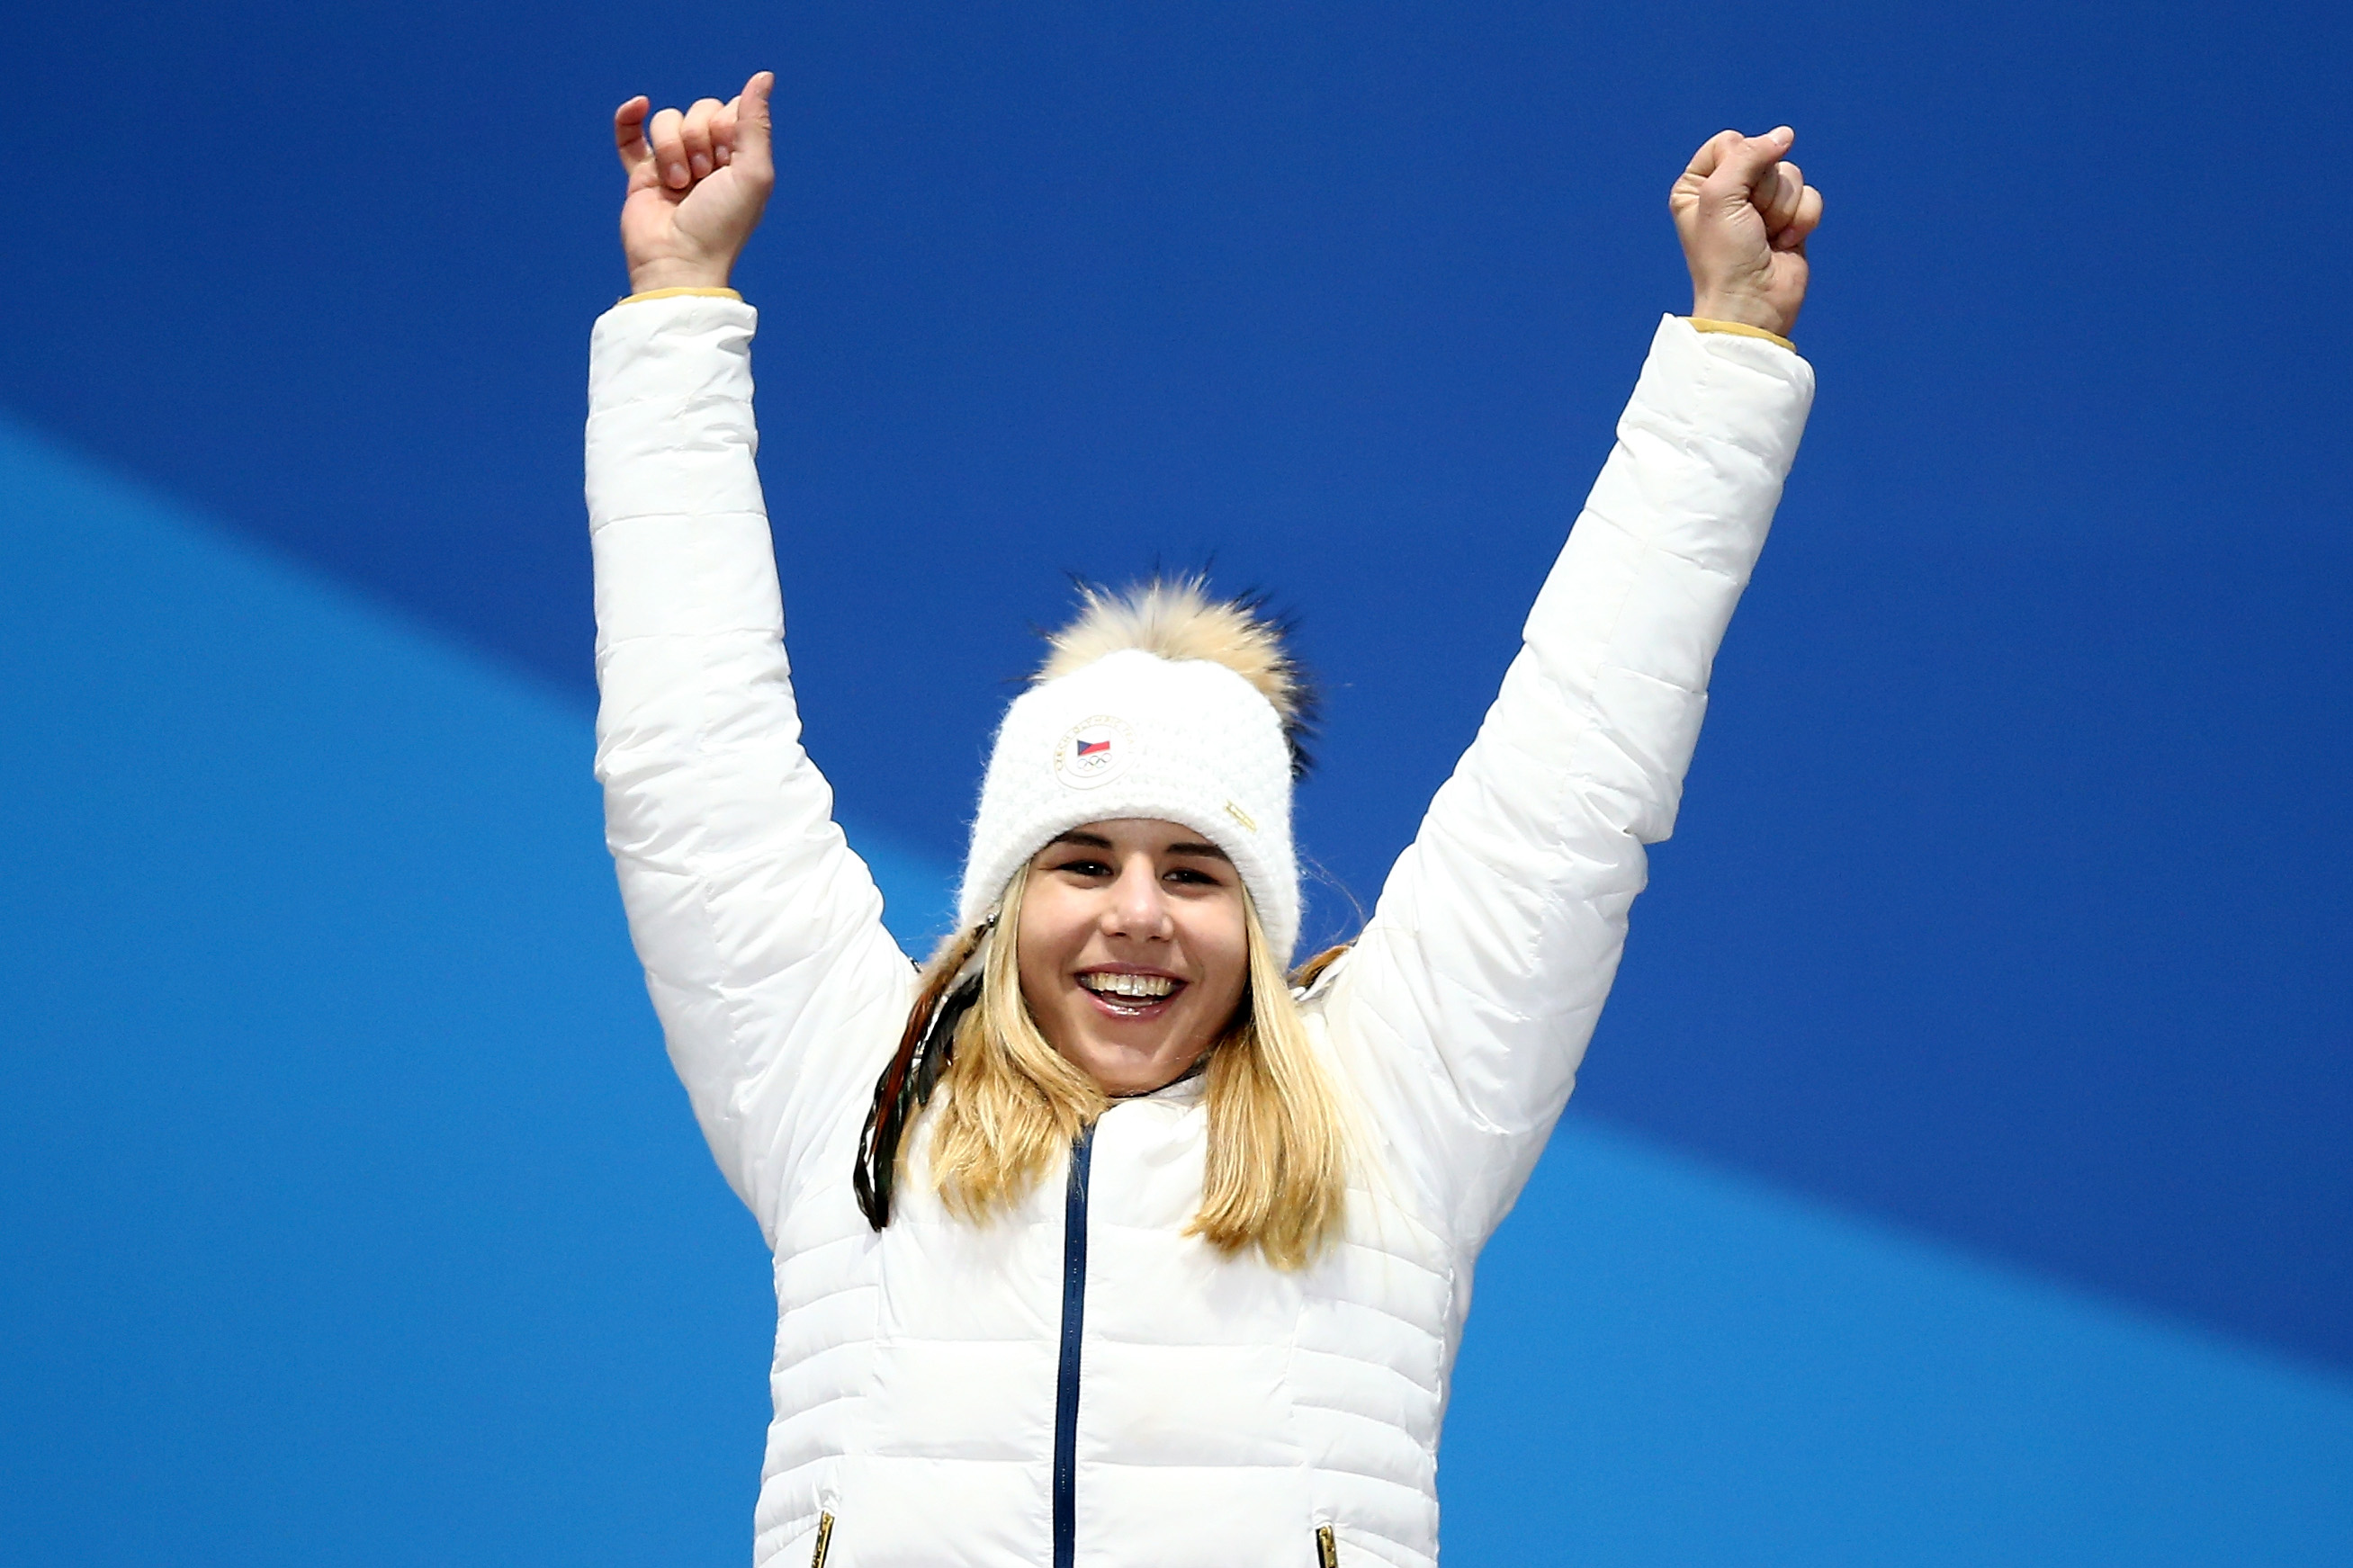 Gold medalist Ester Ledecka of Czech Republic celebrates during the medal ceremony for the Ladies' Alpine Skiing Super-G  on day eight of the PyeongChang 2018 Winter Olympic Games at Medal Plaza on February 17, 2018 in Pyeongchang-gun, South Korea.